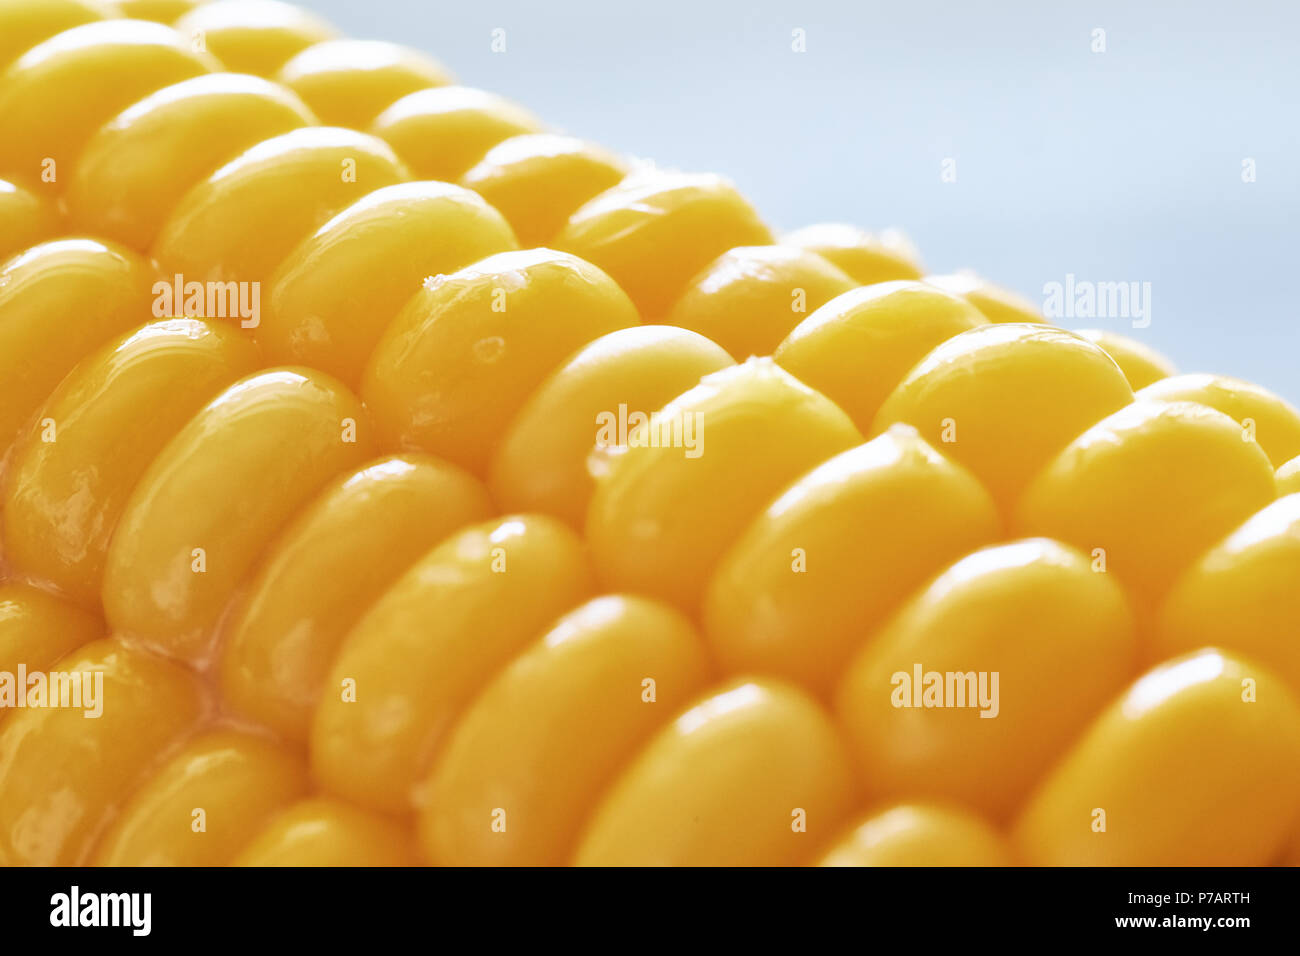 Close-up on oiled corn on the cob on neutral background - Stock Image